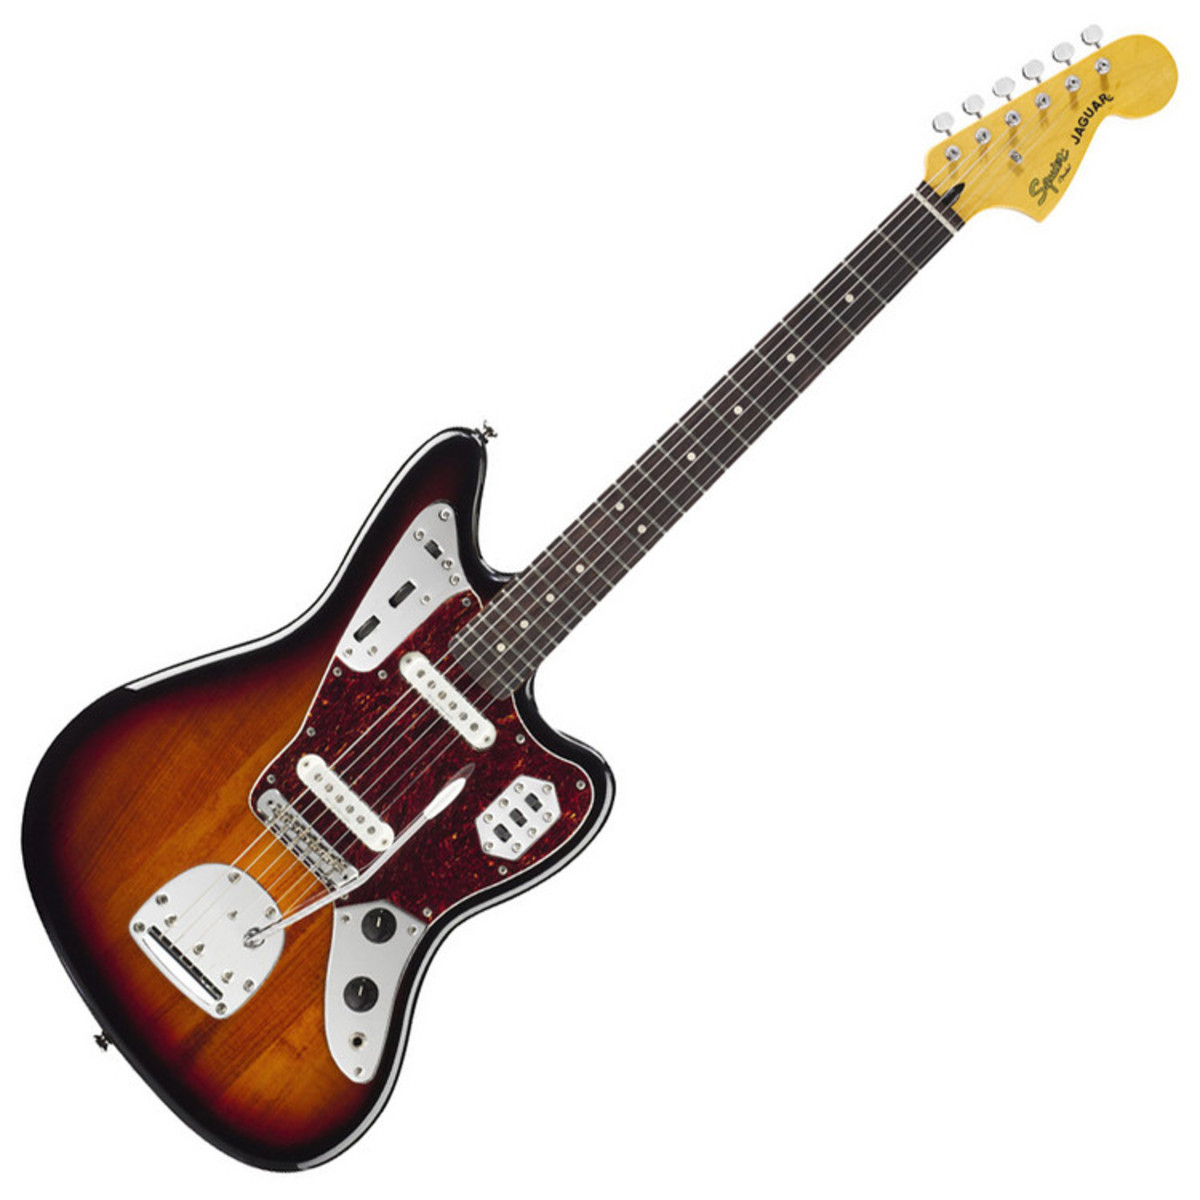 Fender vintage jaguar confirm. happens